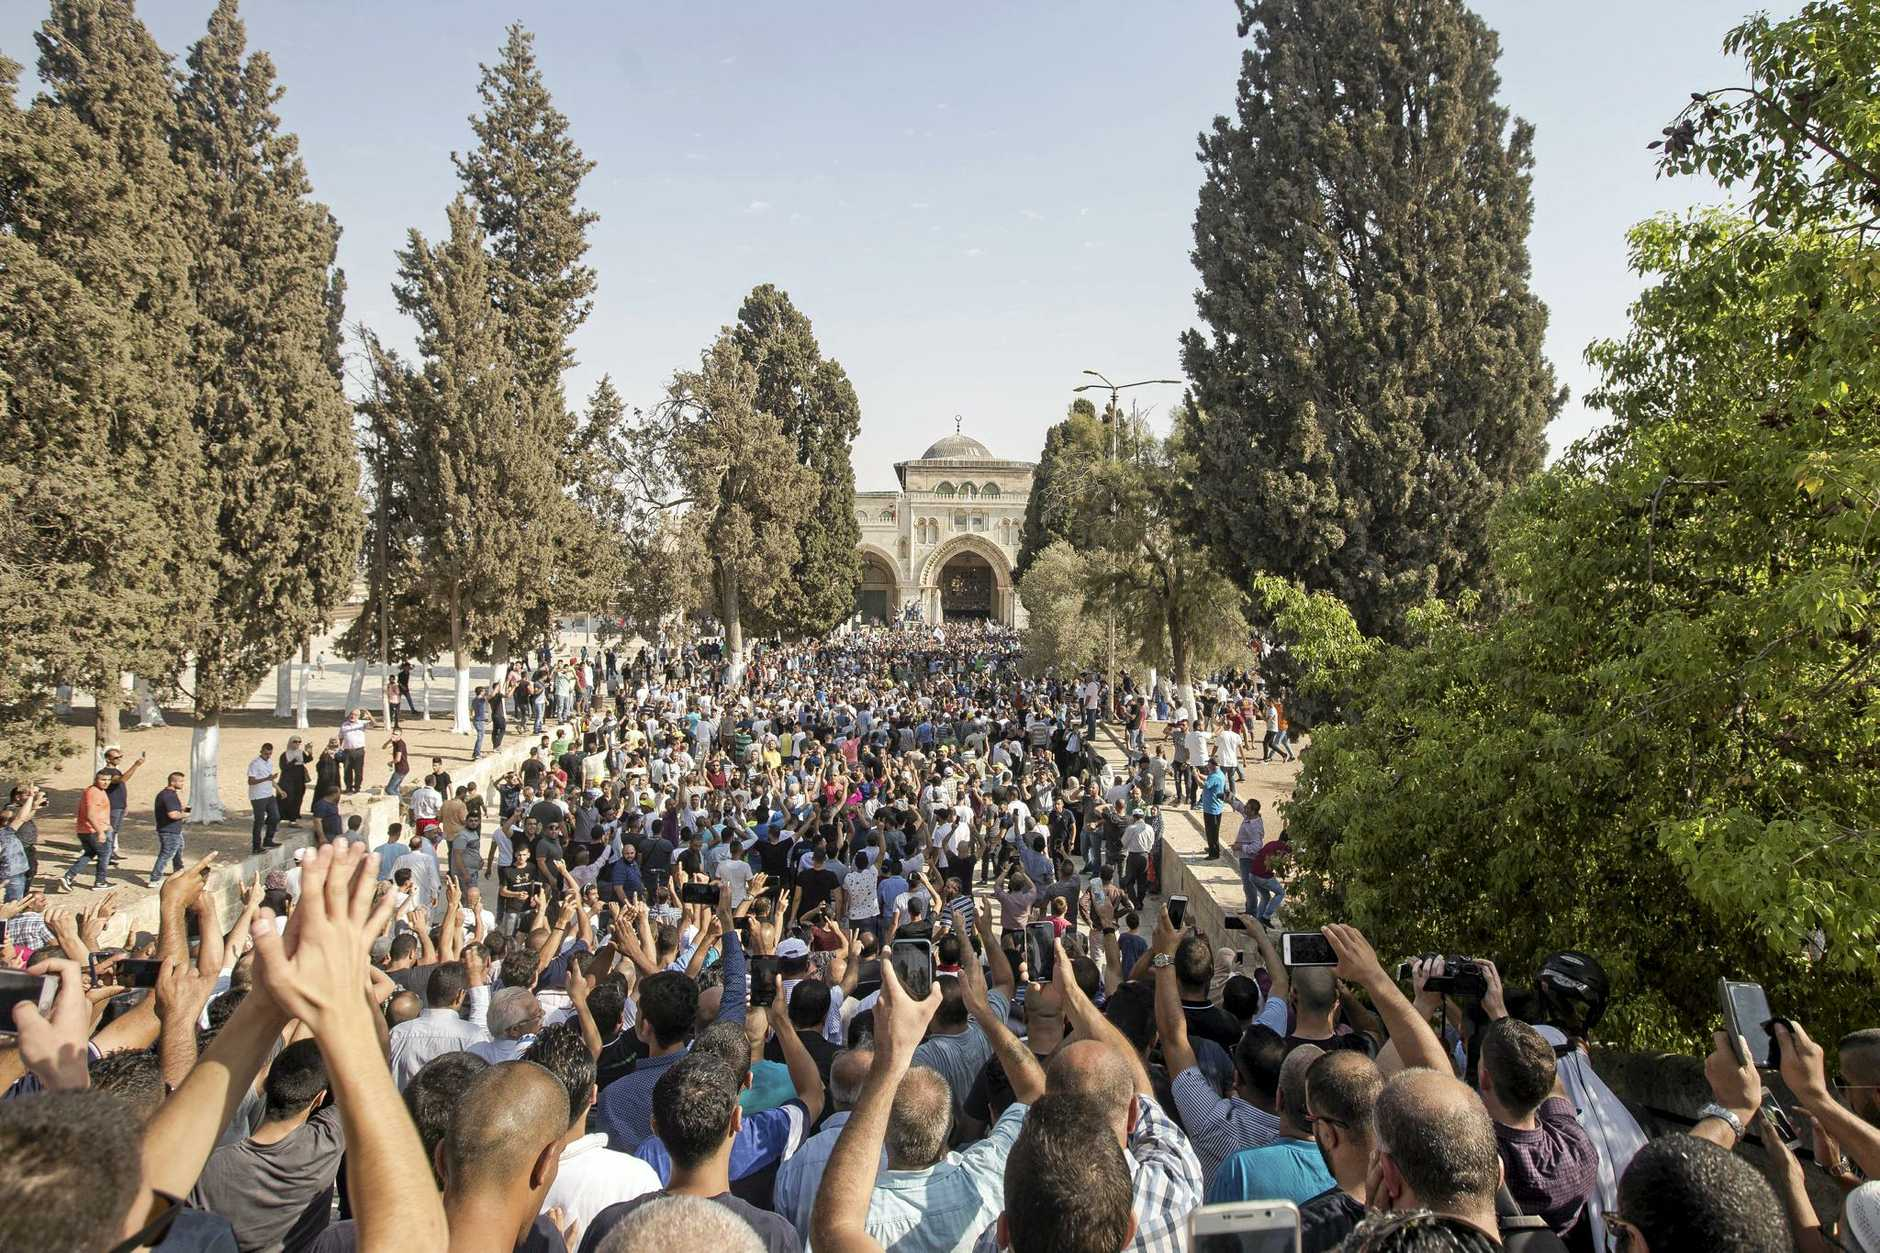 Palestinian worshippers enter the Al-Aqsa Mosque compound in the Old City of Jerusalem.